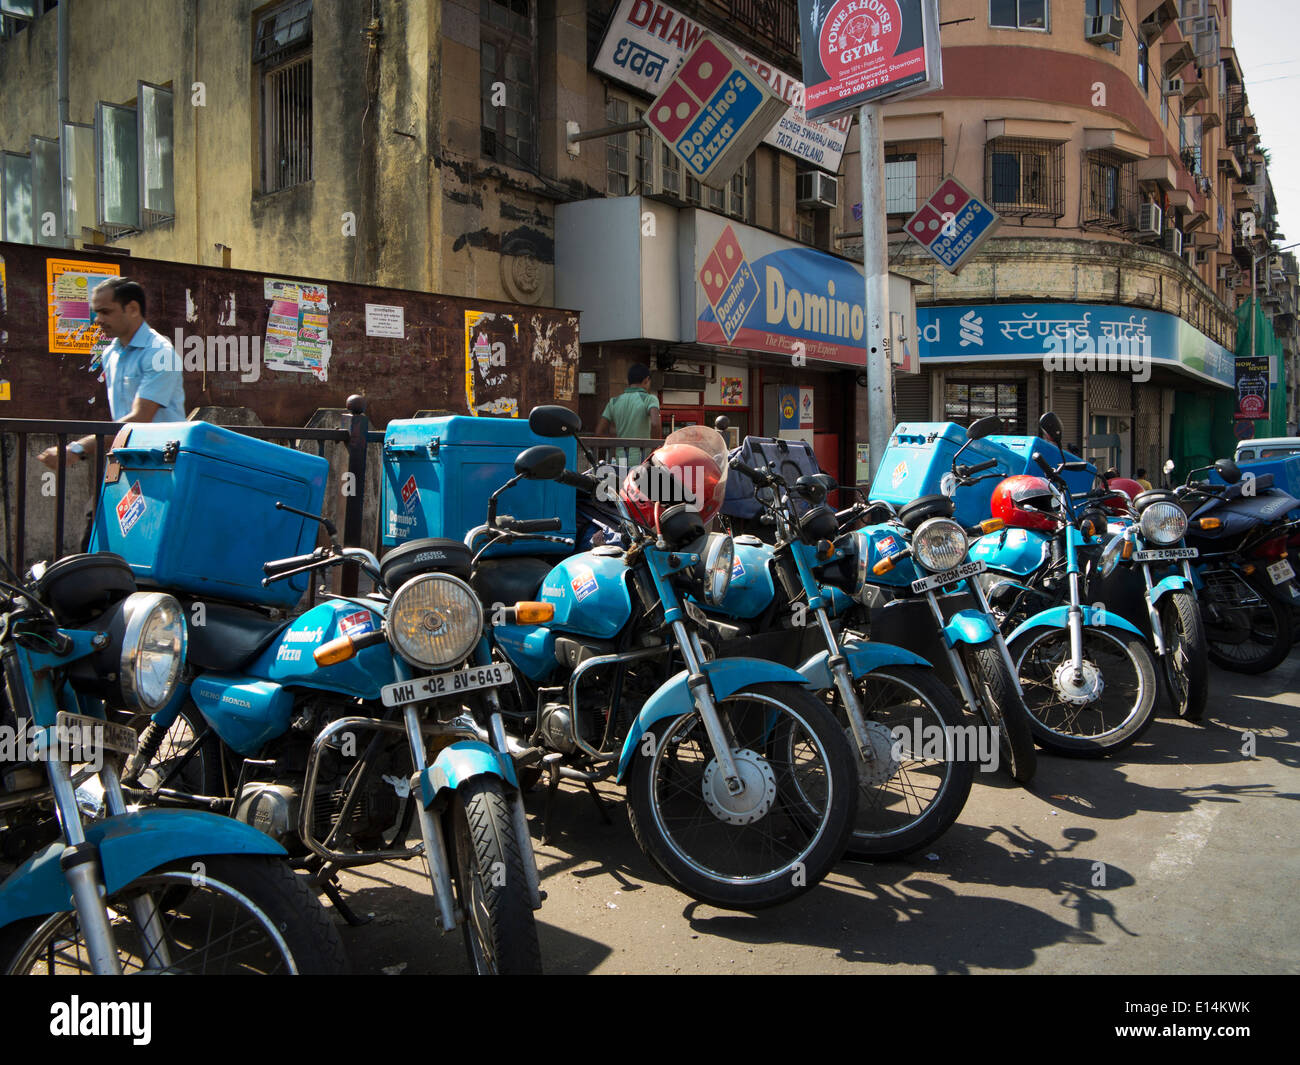 India, Mumbai, Fast Food, Dominos pizza delivery bikes parked on the road - Stock Image